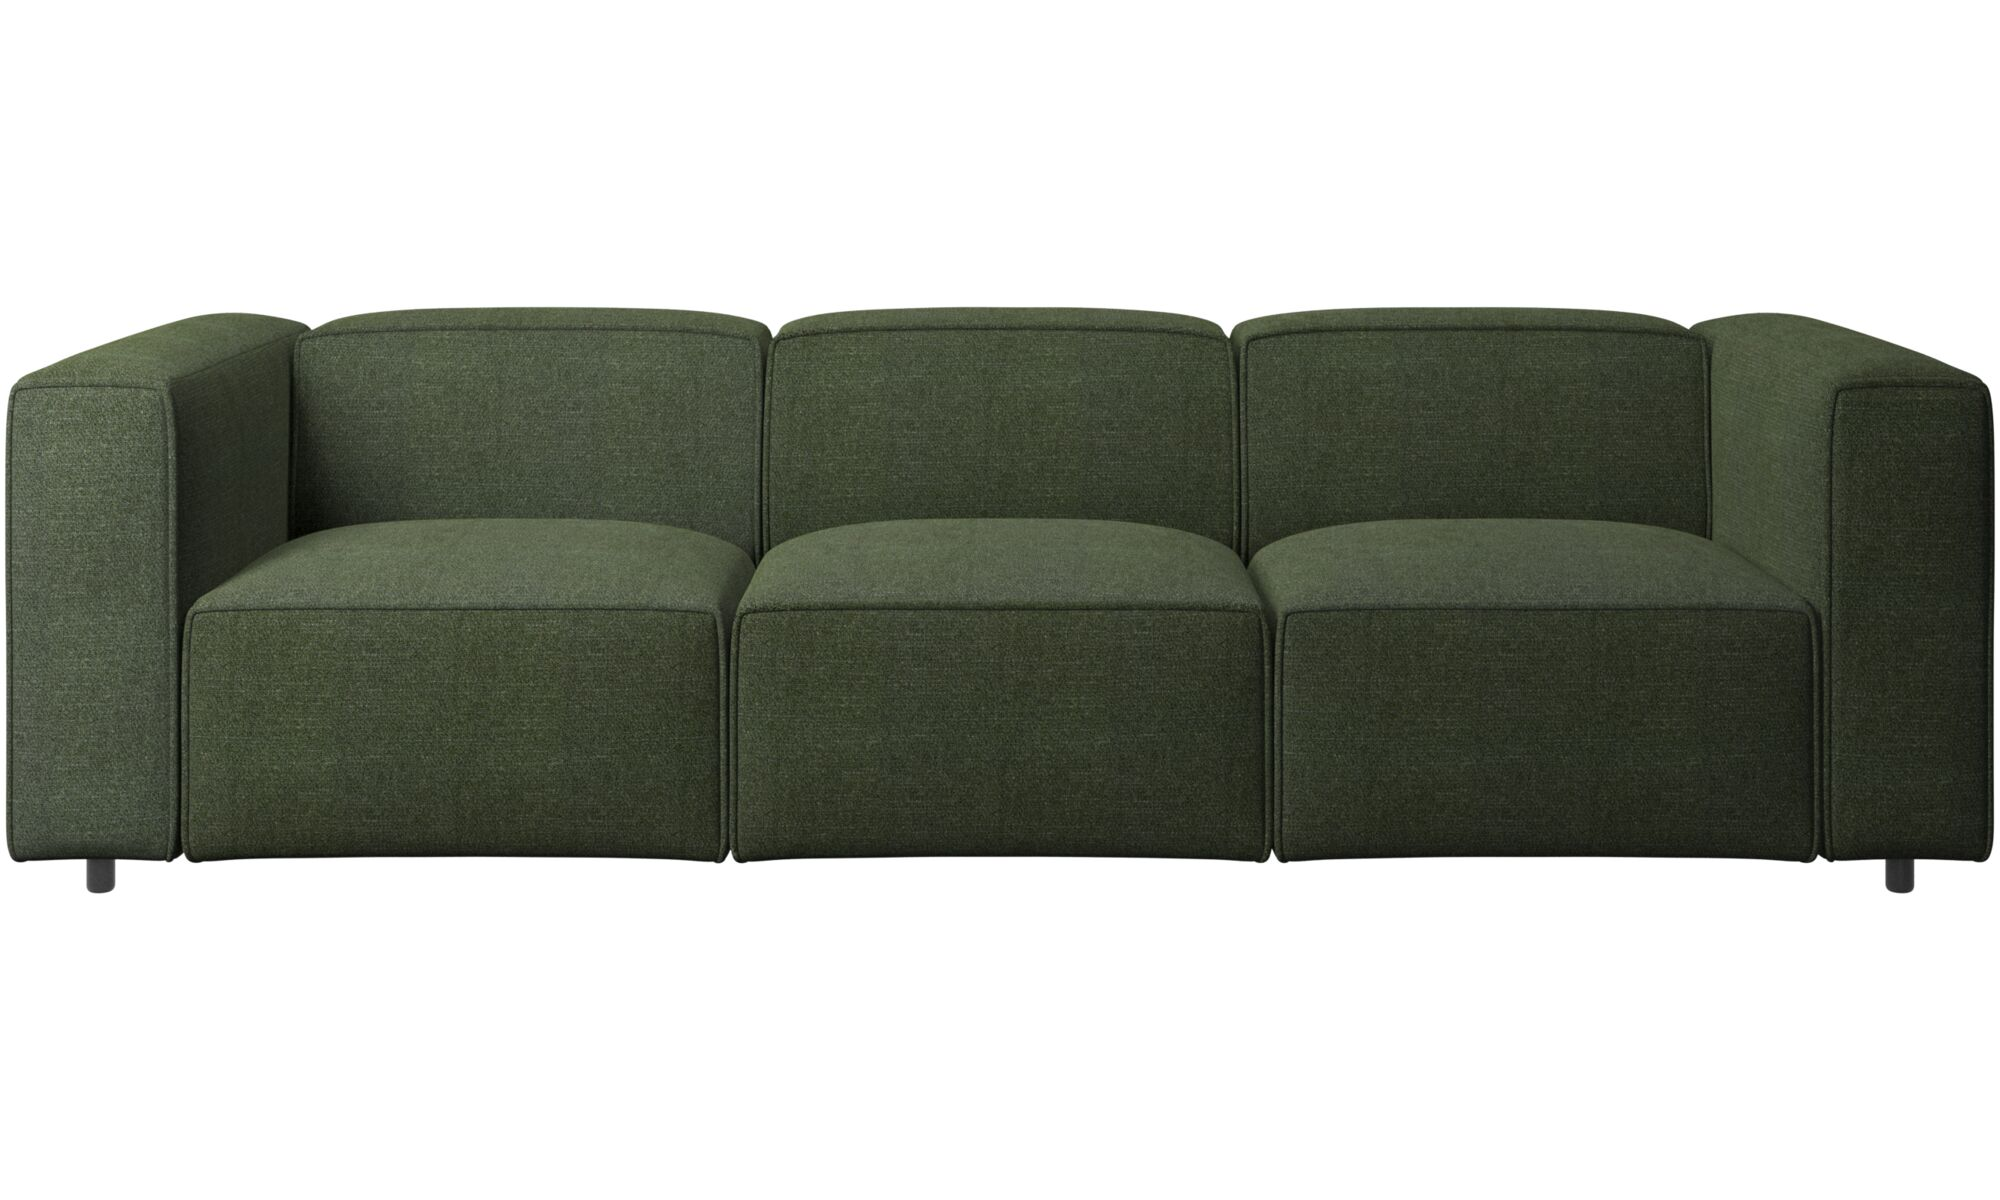 Modular sofas - Carmo sofa - Green - Fabric